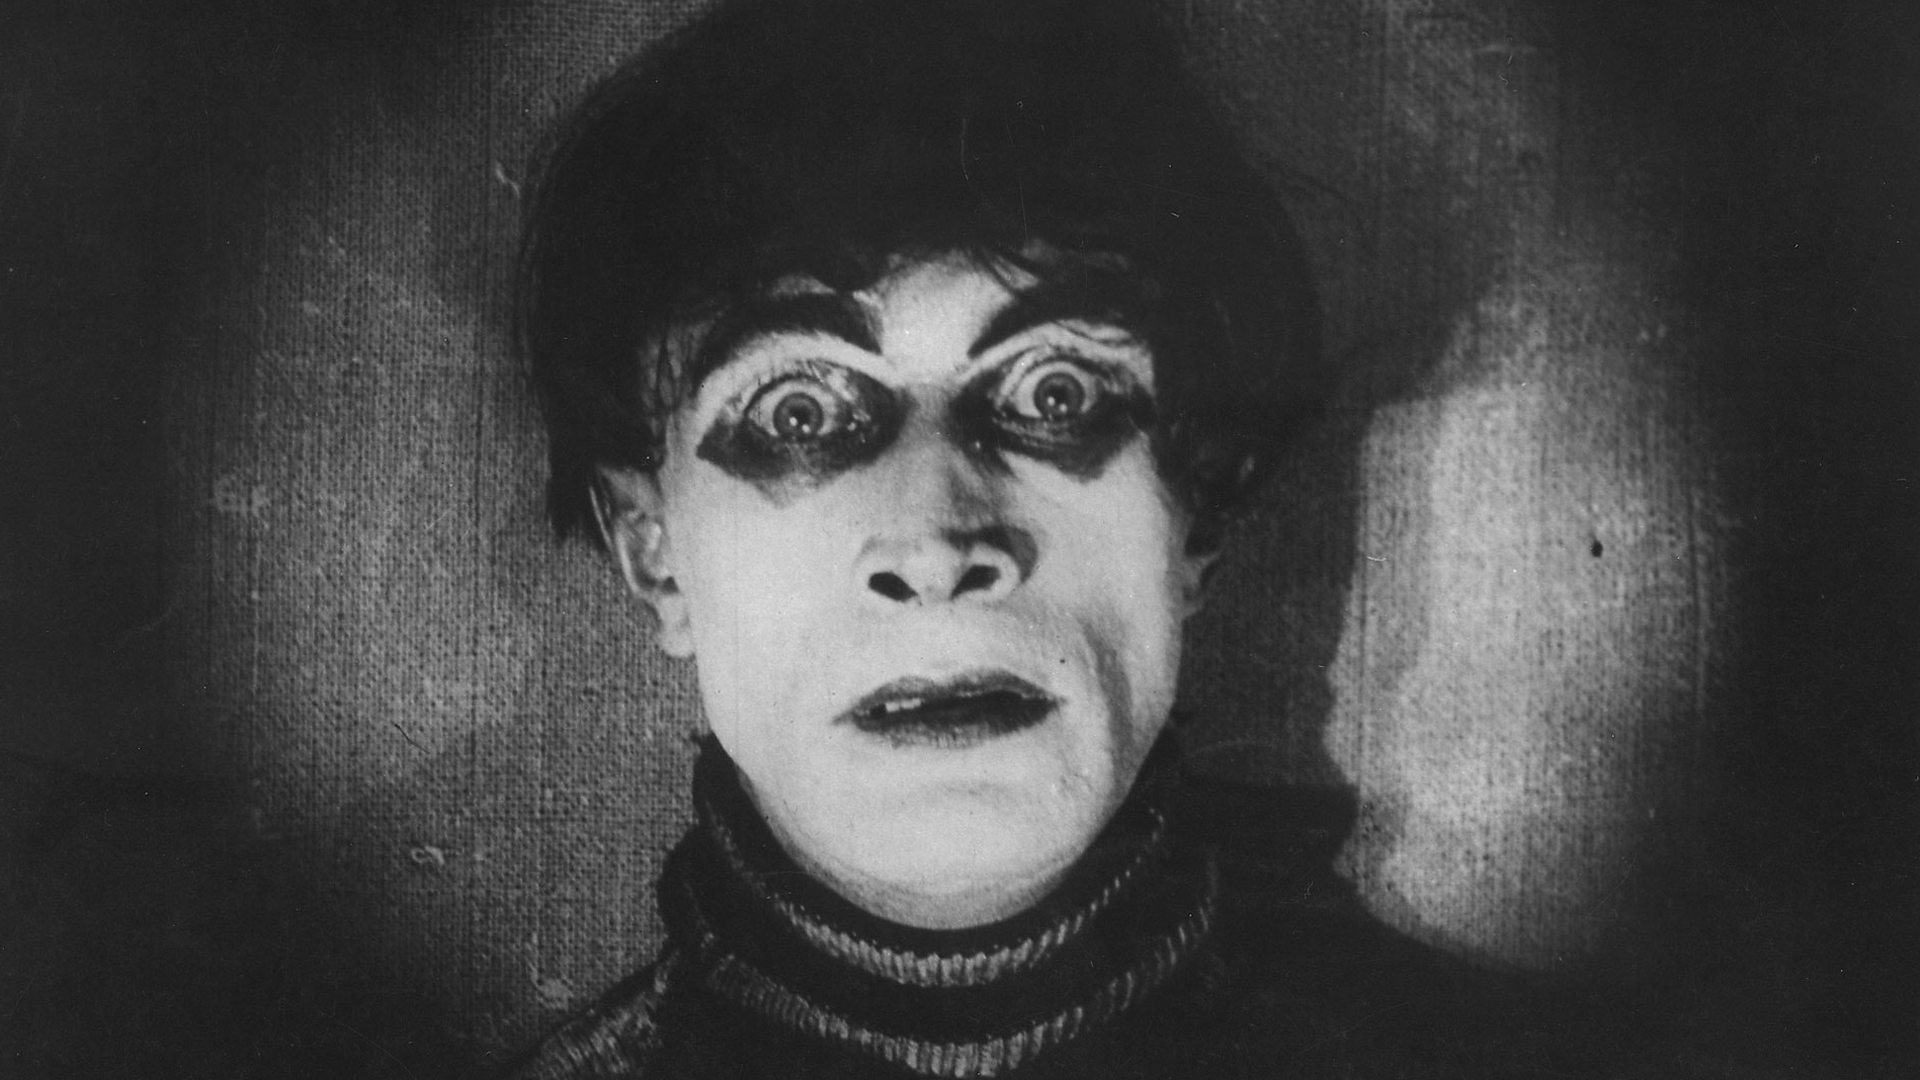 from: The Cabinet of Dr. Caligari (1920). Director: Robert Wiene